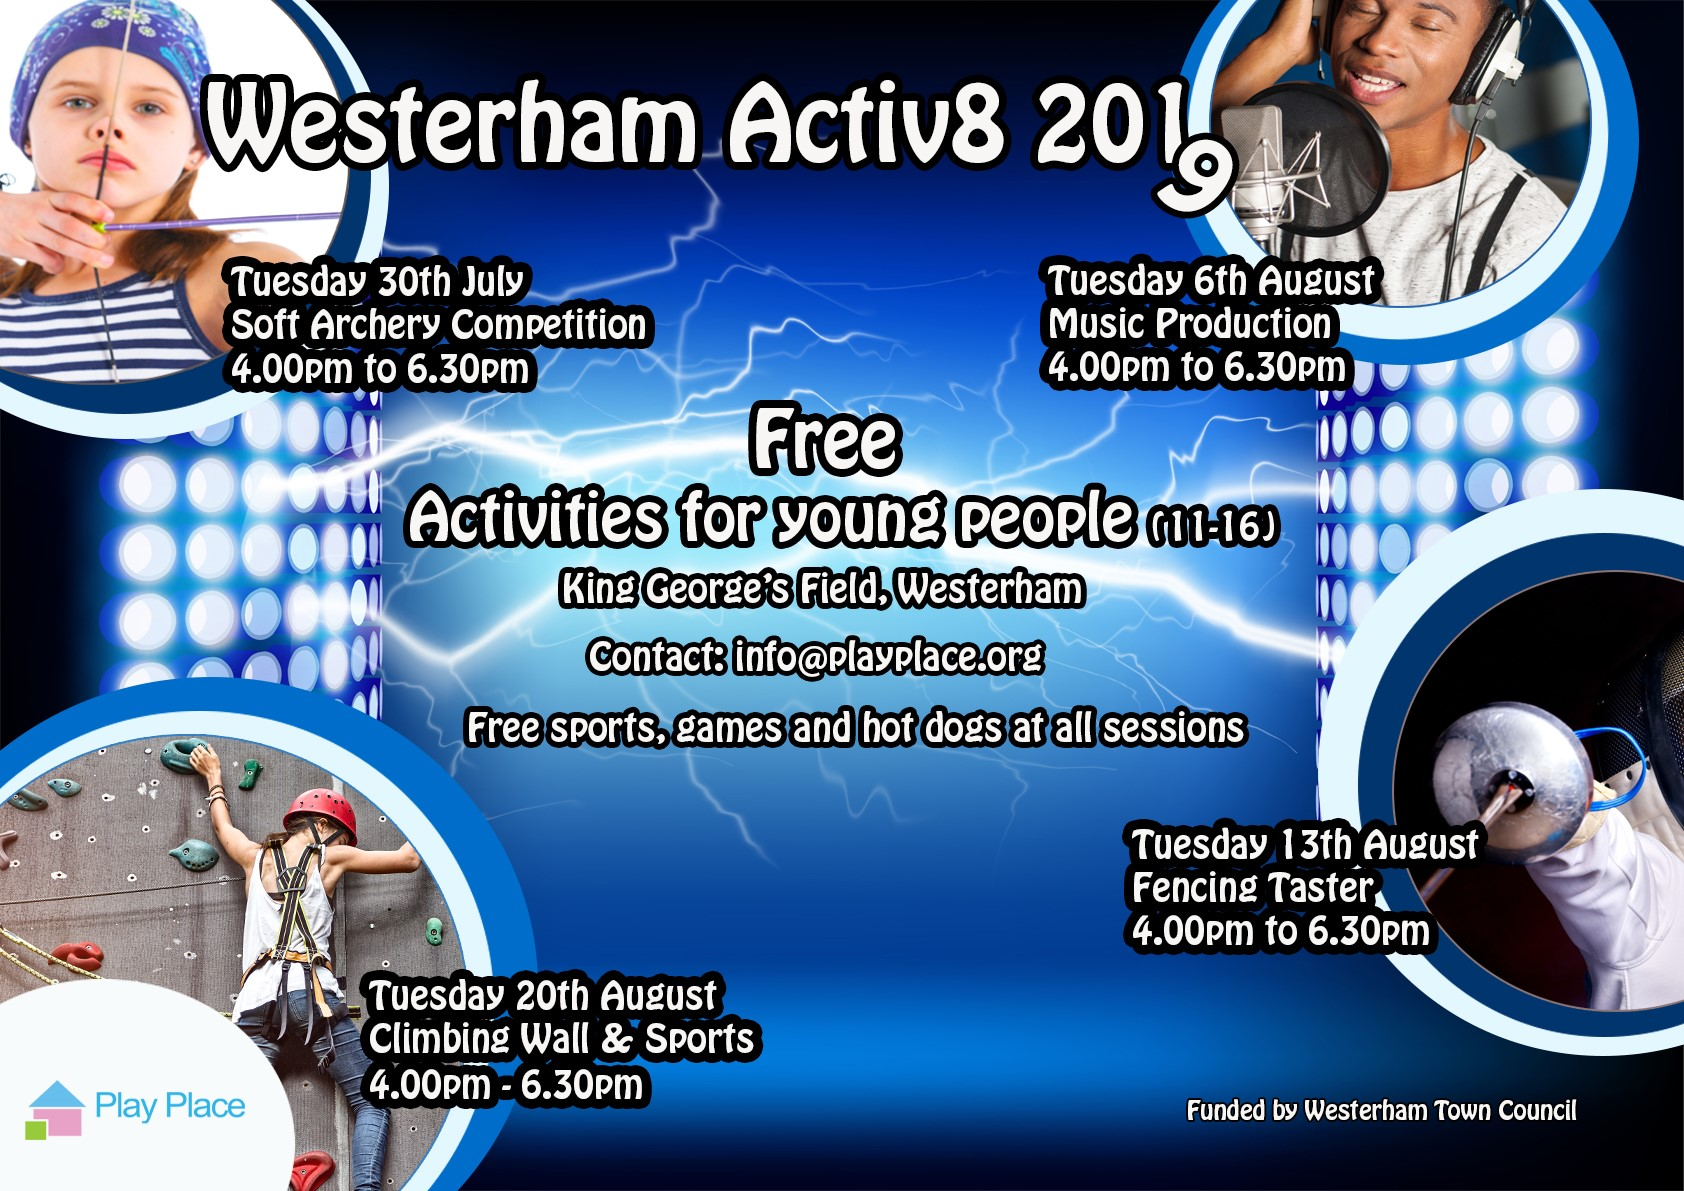 Westerham Summer fun for 11-16 yrs olds